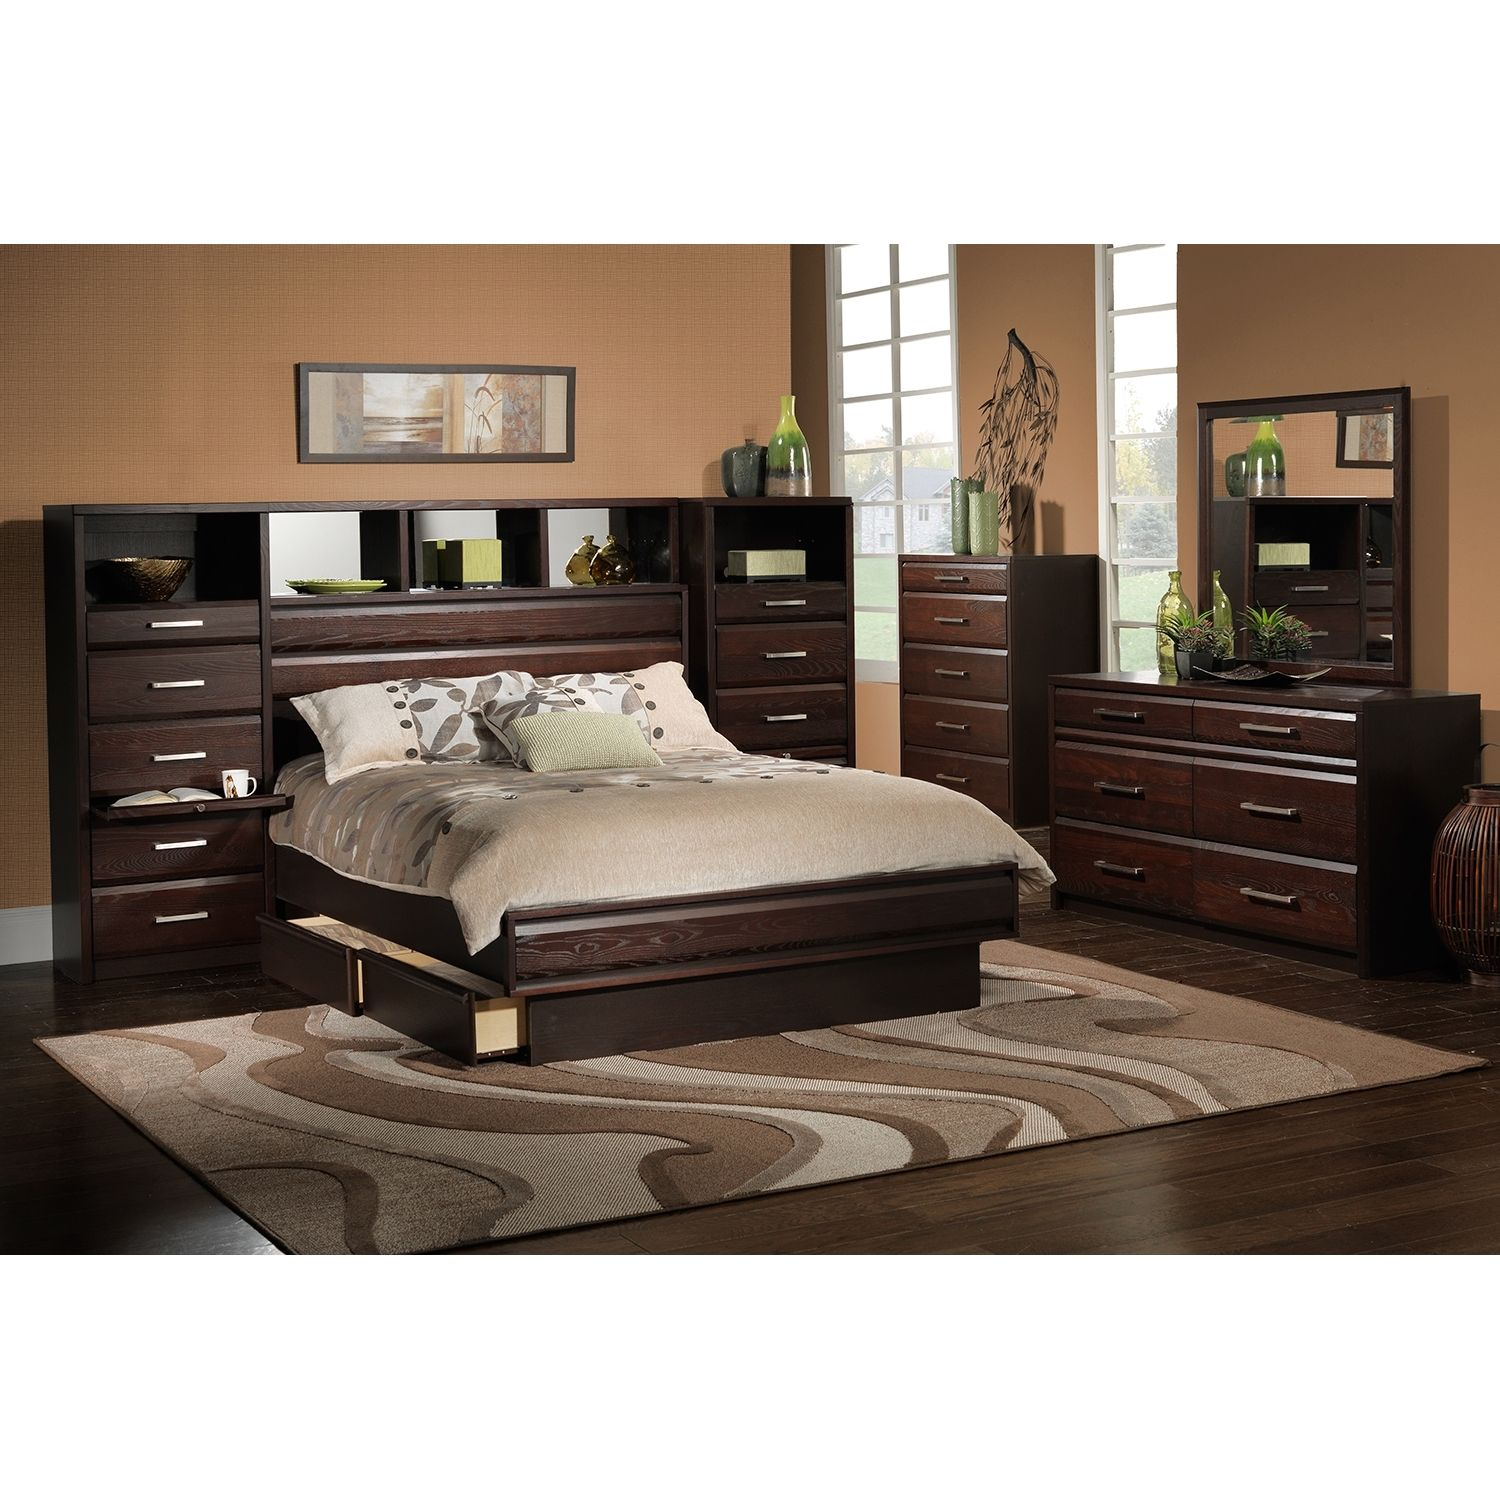 King Bed Wall Unit.Tango King Wall Bed Leon S Bedroom Sets Bedroom